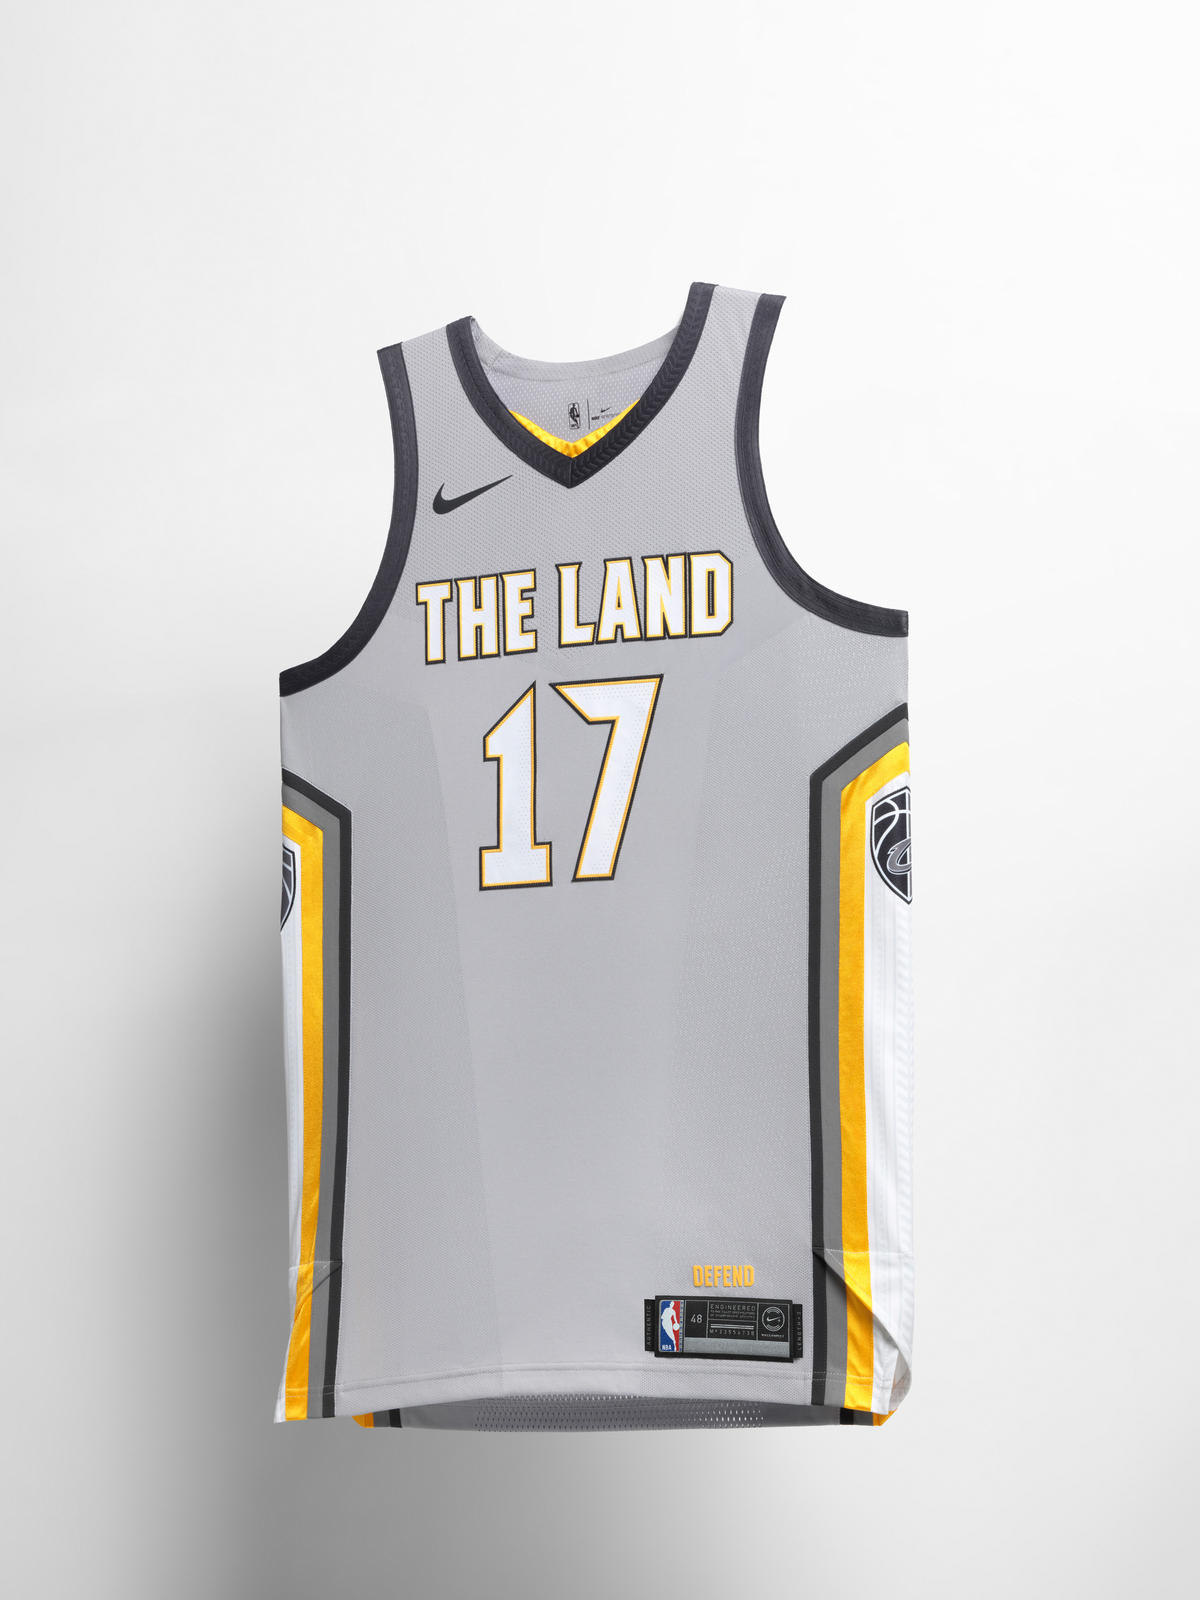 Nike_NBA_City_Edition_Uniform_Cleveland_Cavaliers_0070_native_1600